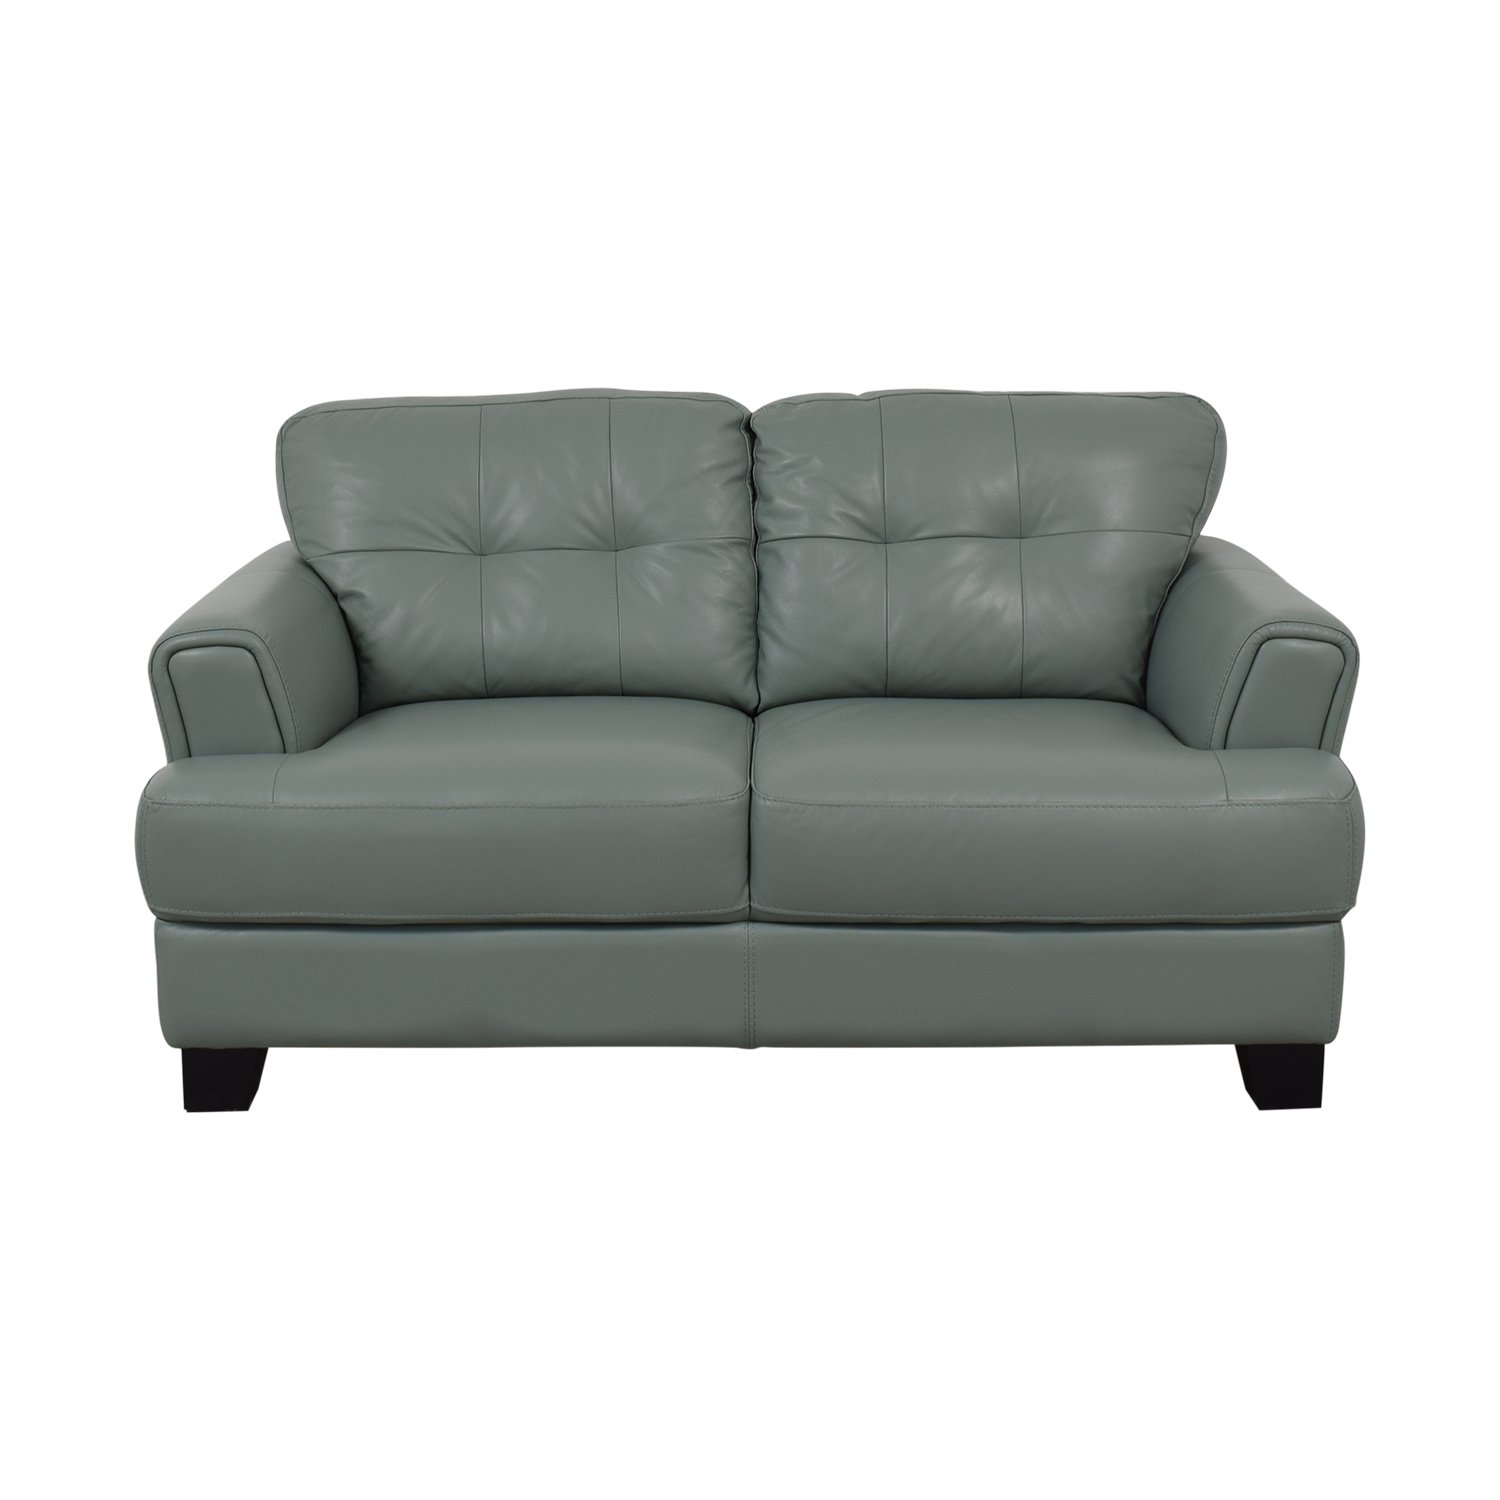 buy Chateau D'Ax Chateau D'Ax Seafoam Green Tufted Loveseat online